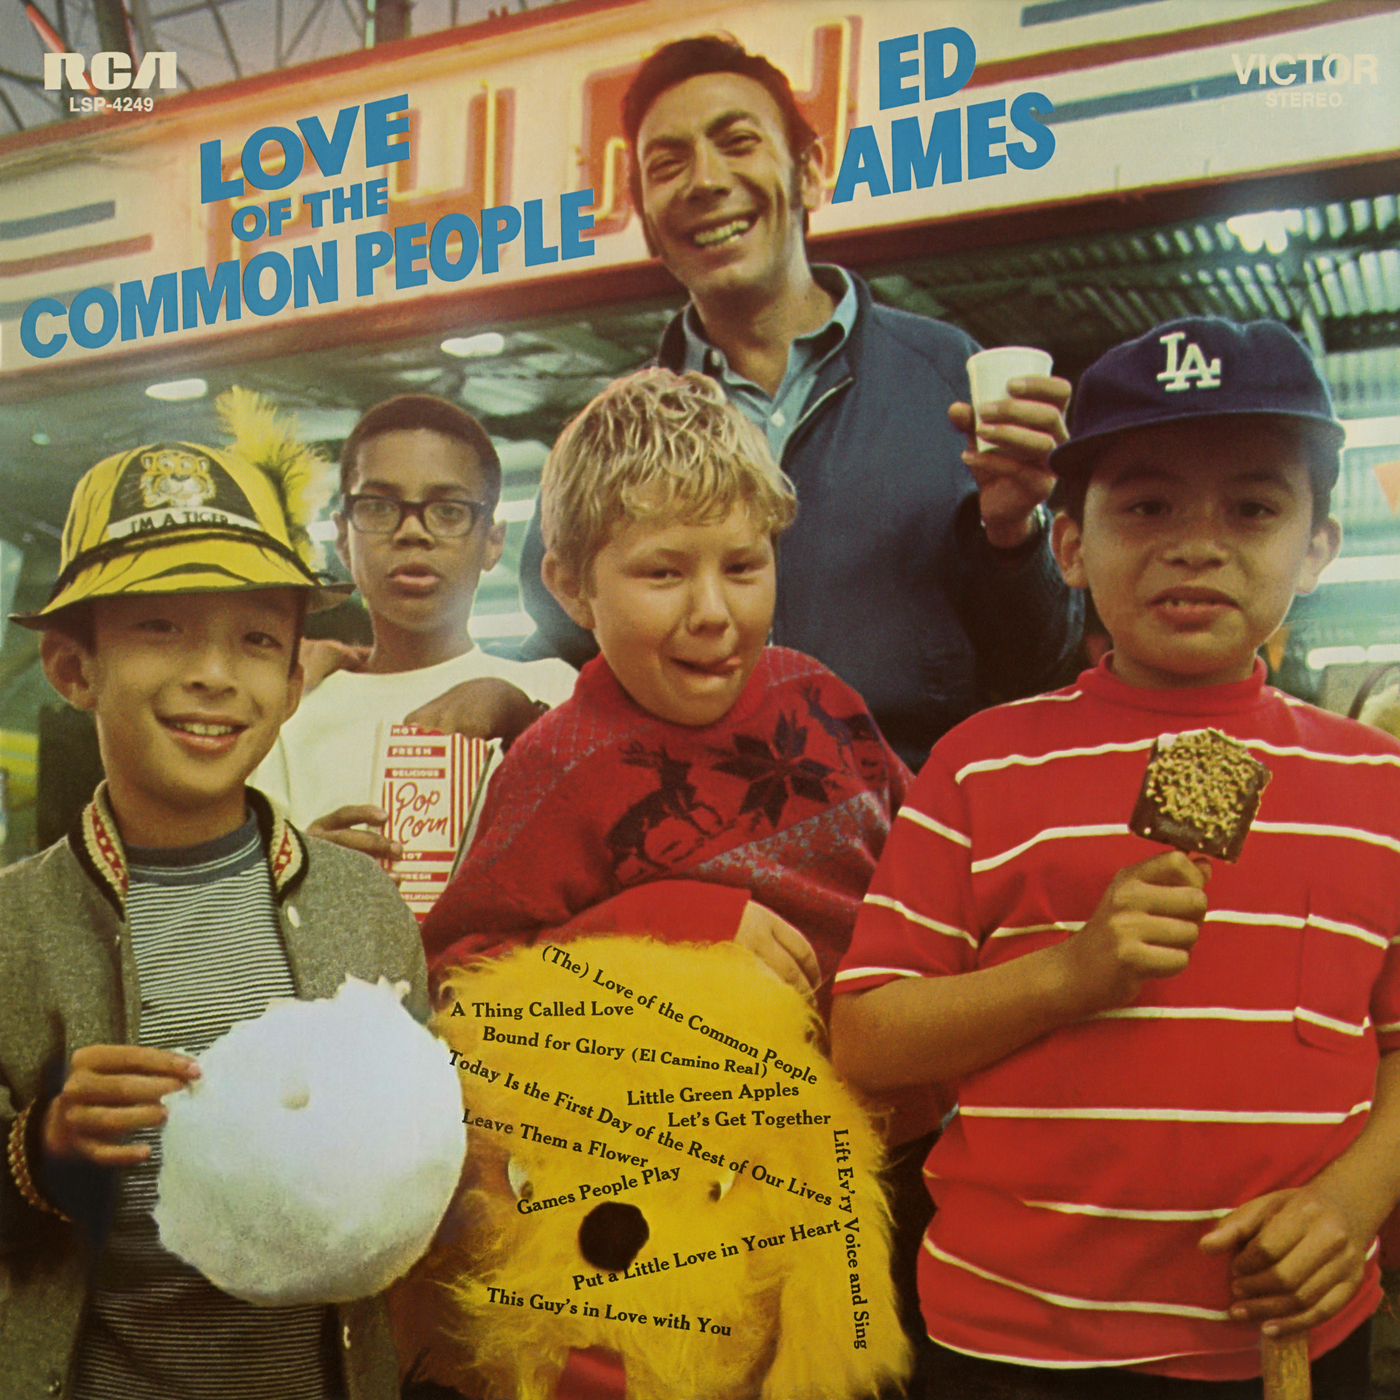 Love of the Common People - Ed Ames